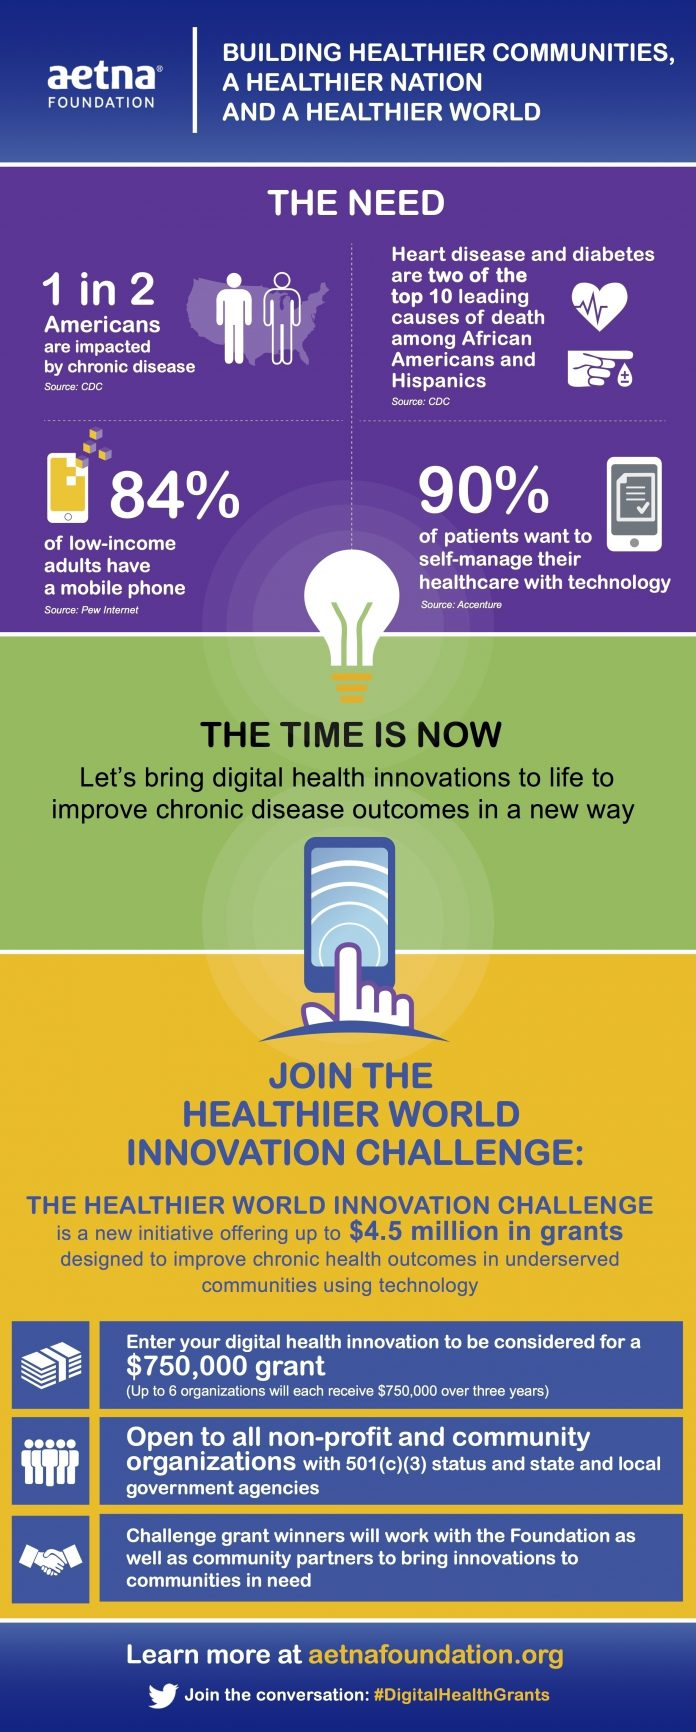 Aetna_foundation_healthier_world_innovation_challenge_infographic_final